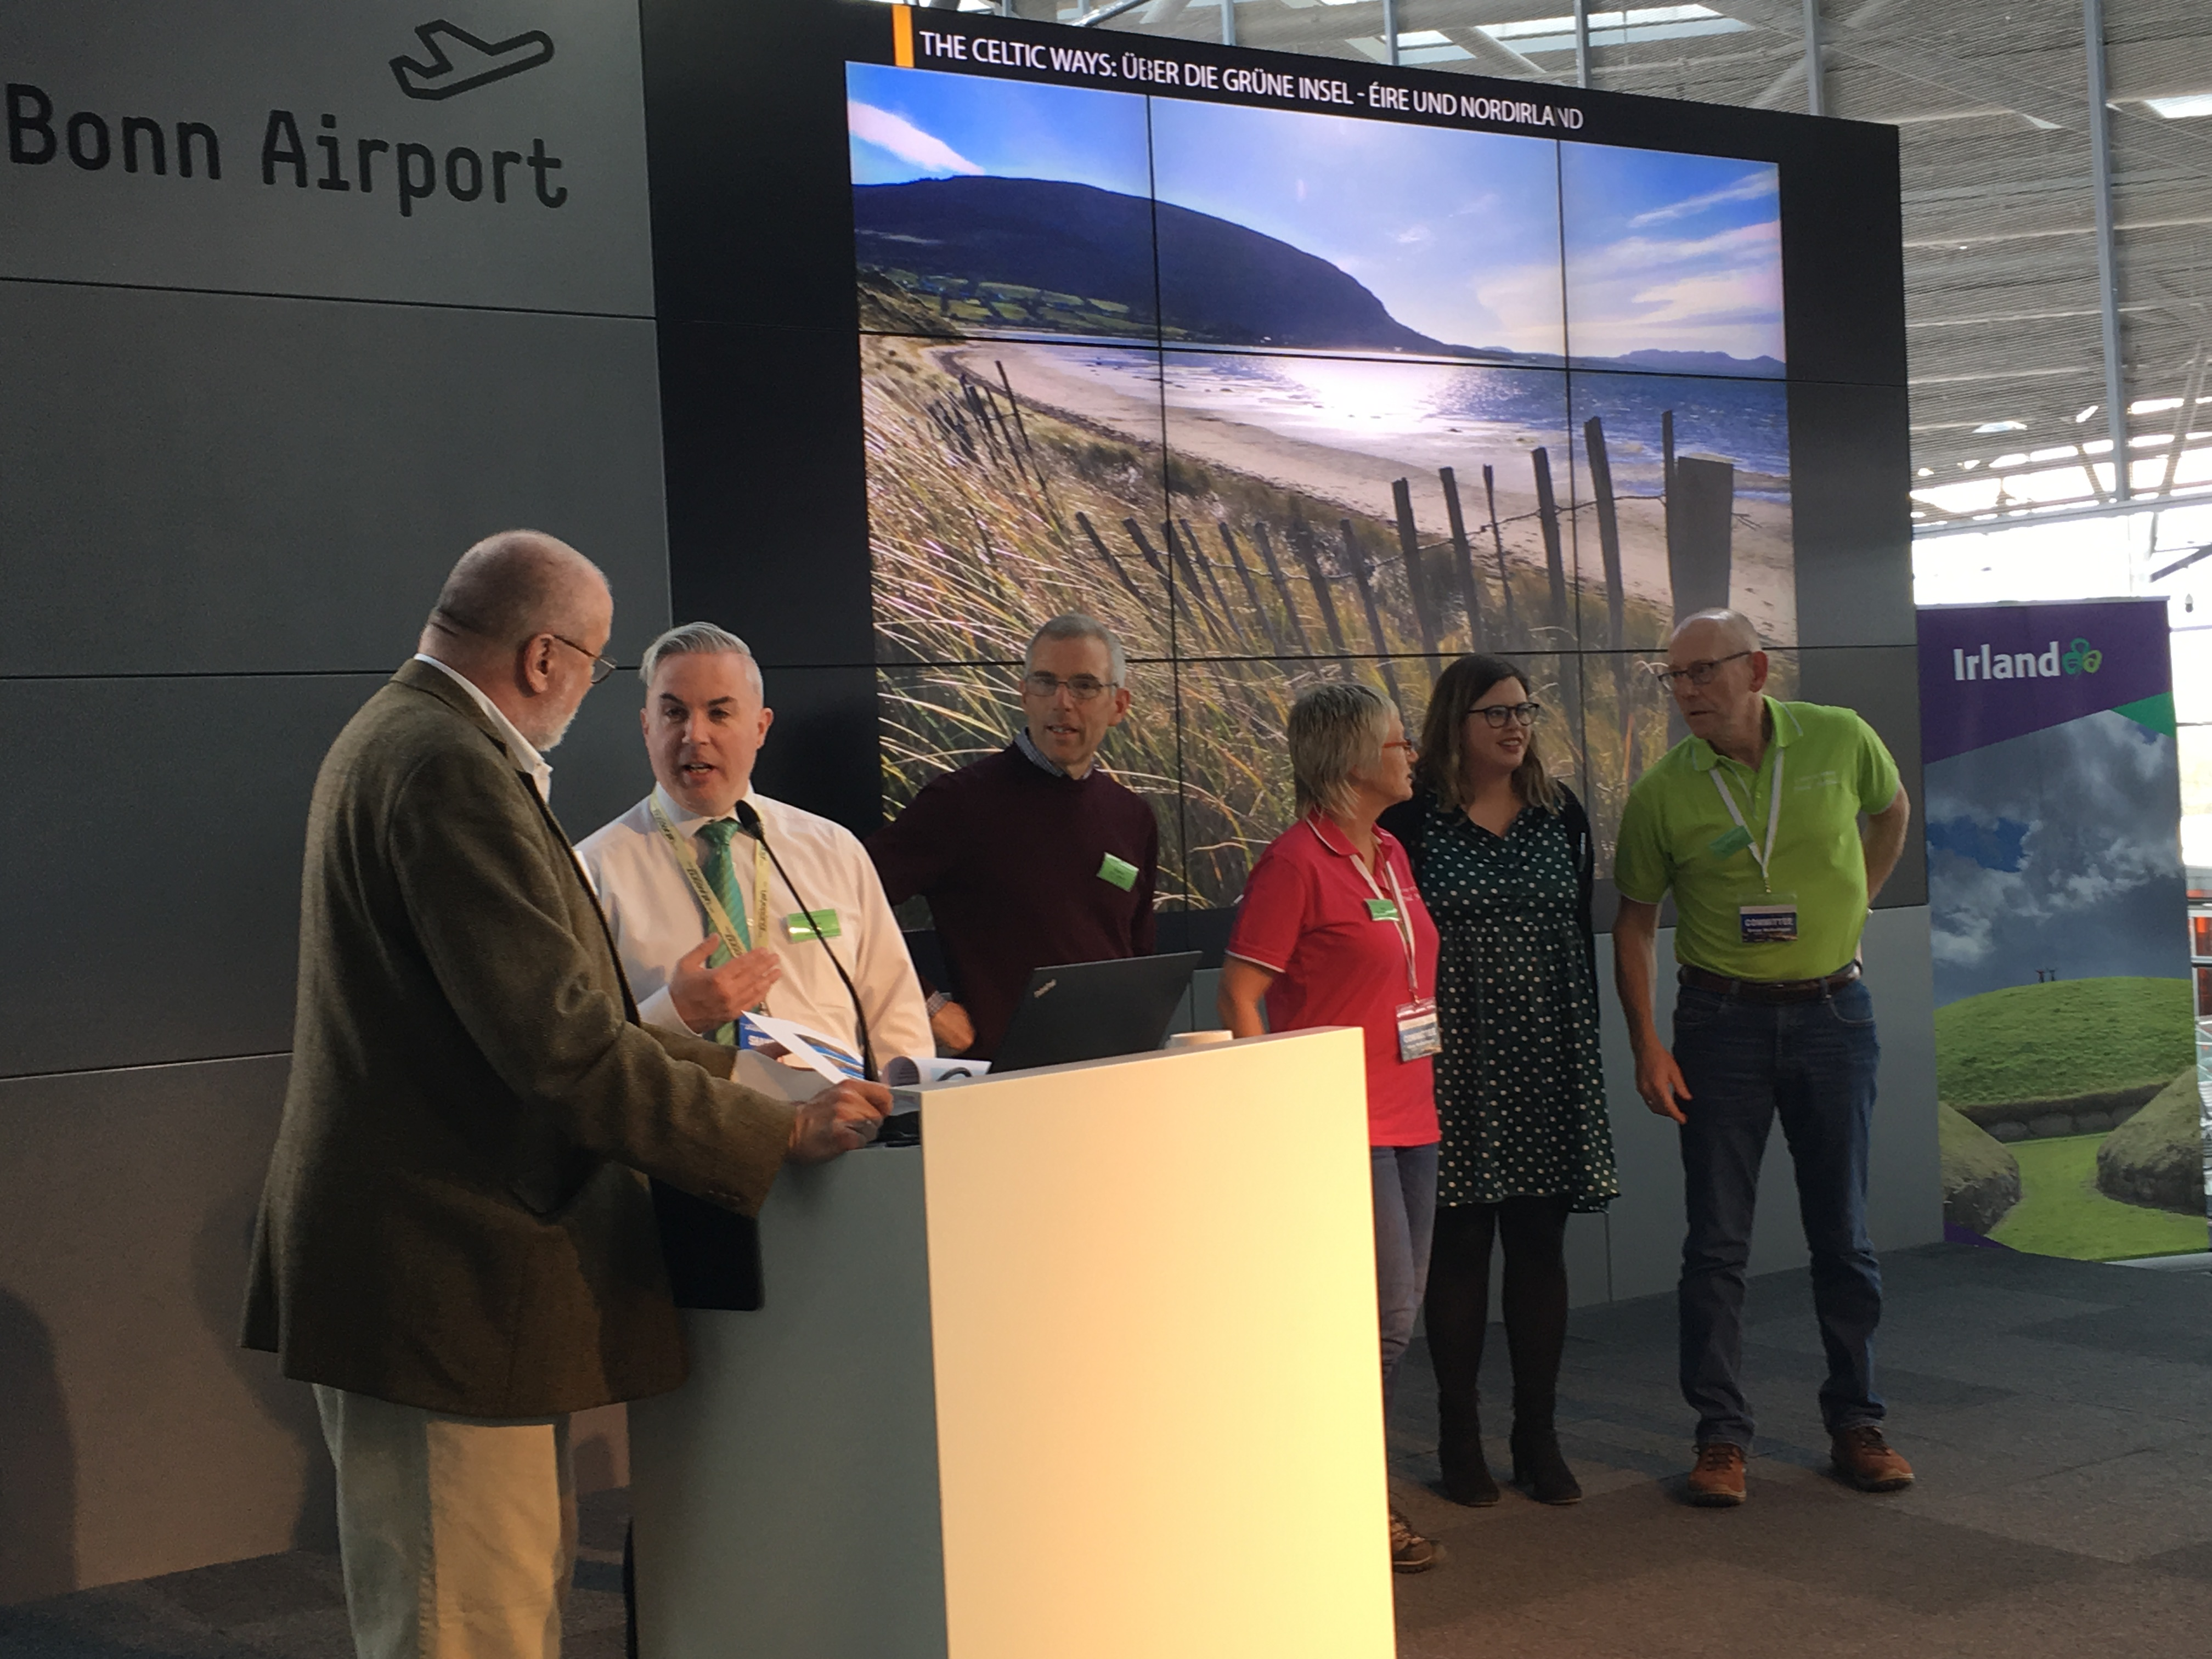 Speaking a few words of pigeon German with Chris on stage at the event in Cologne/Bonn Airport